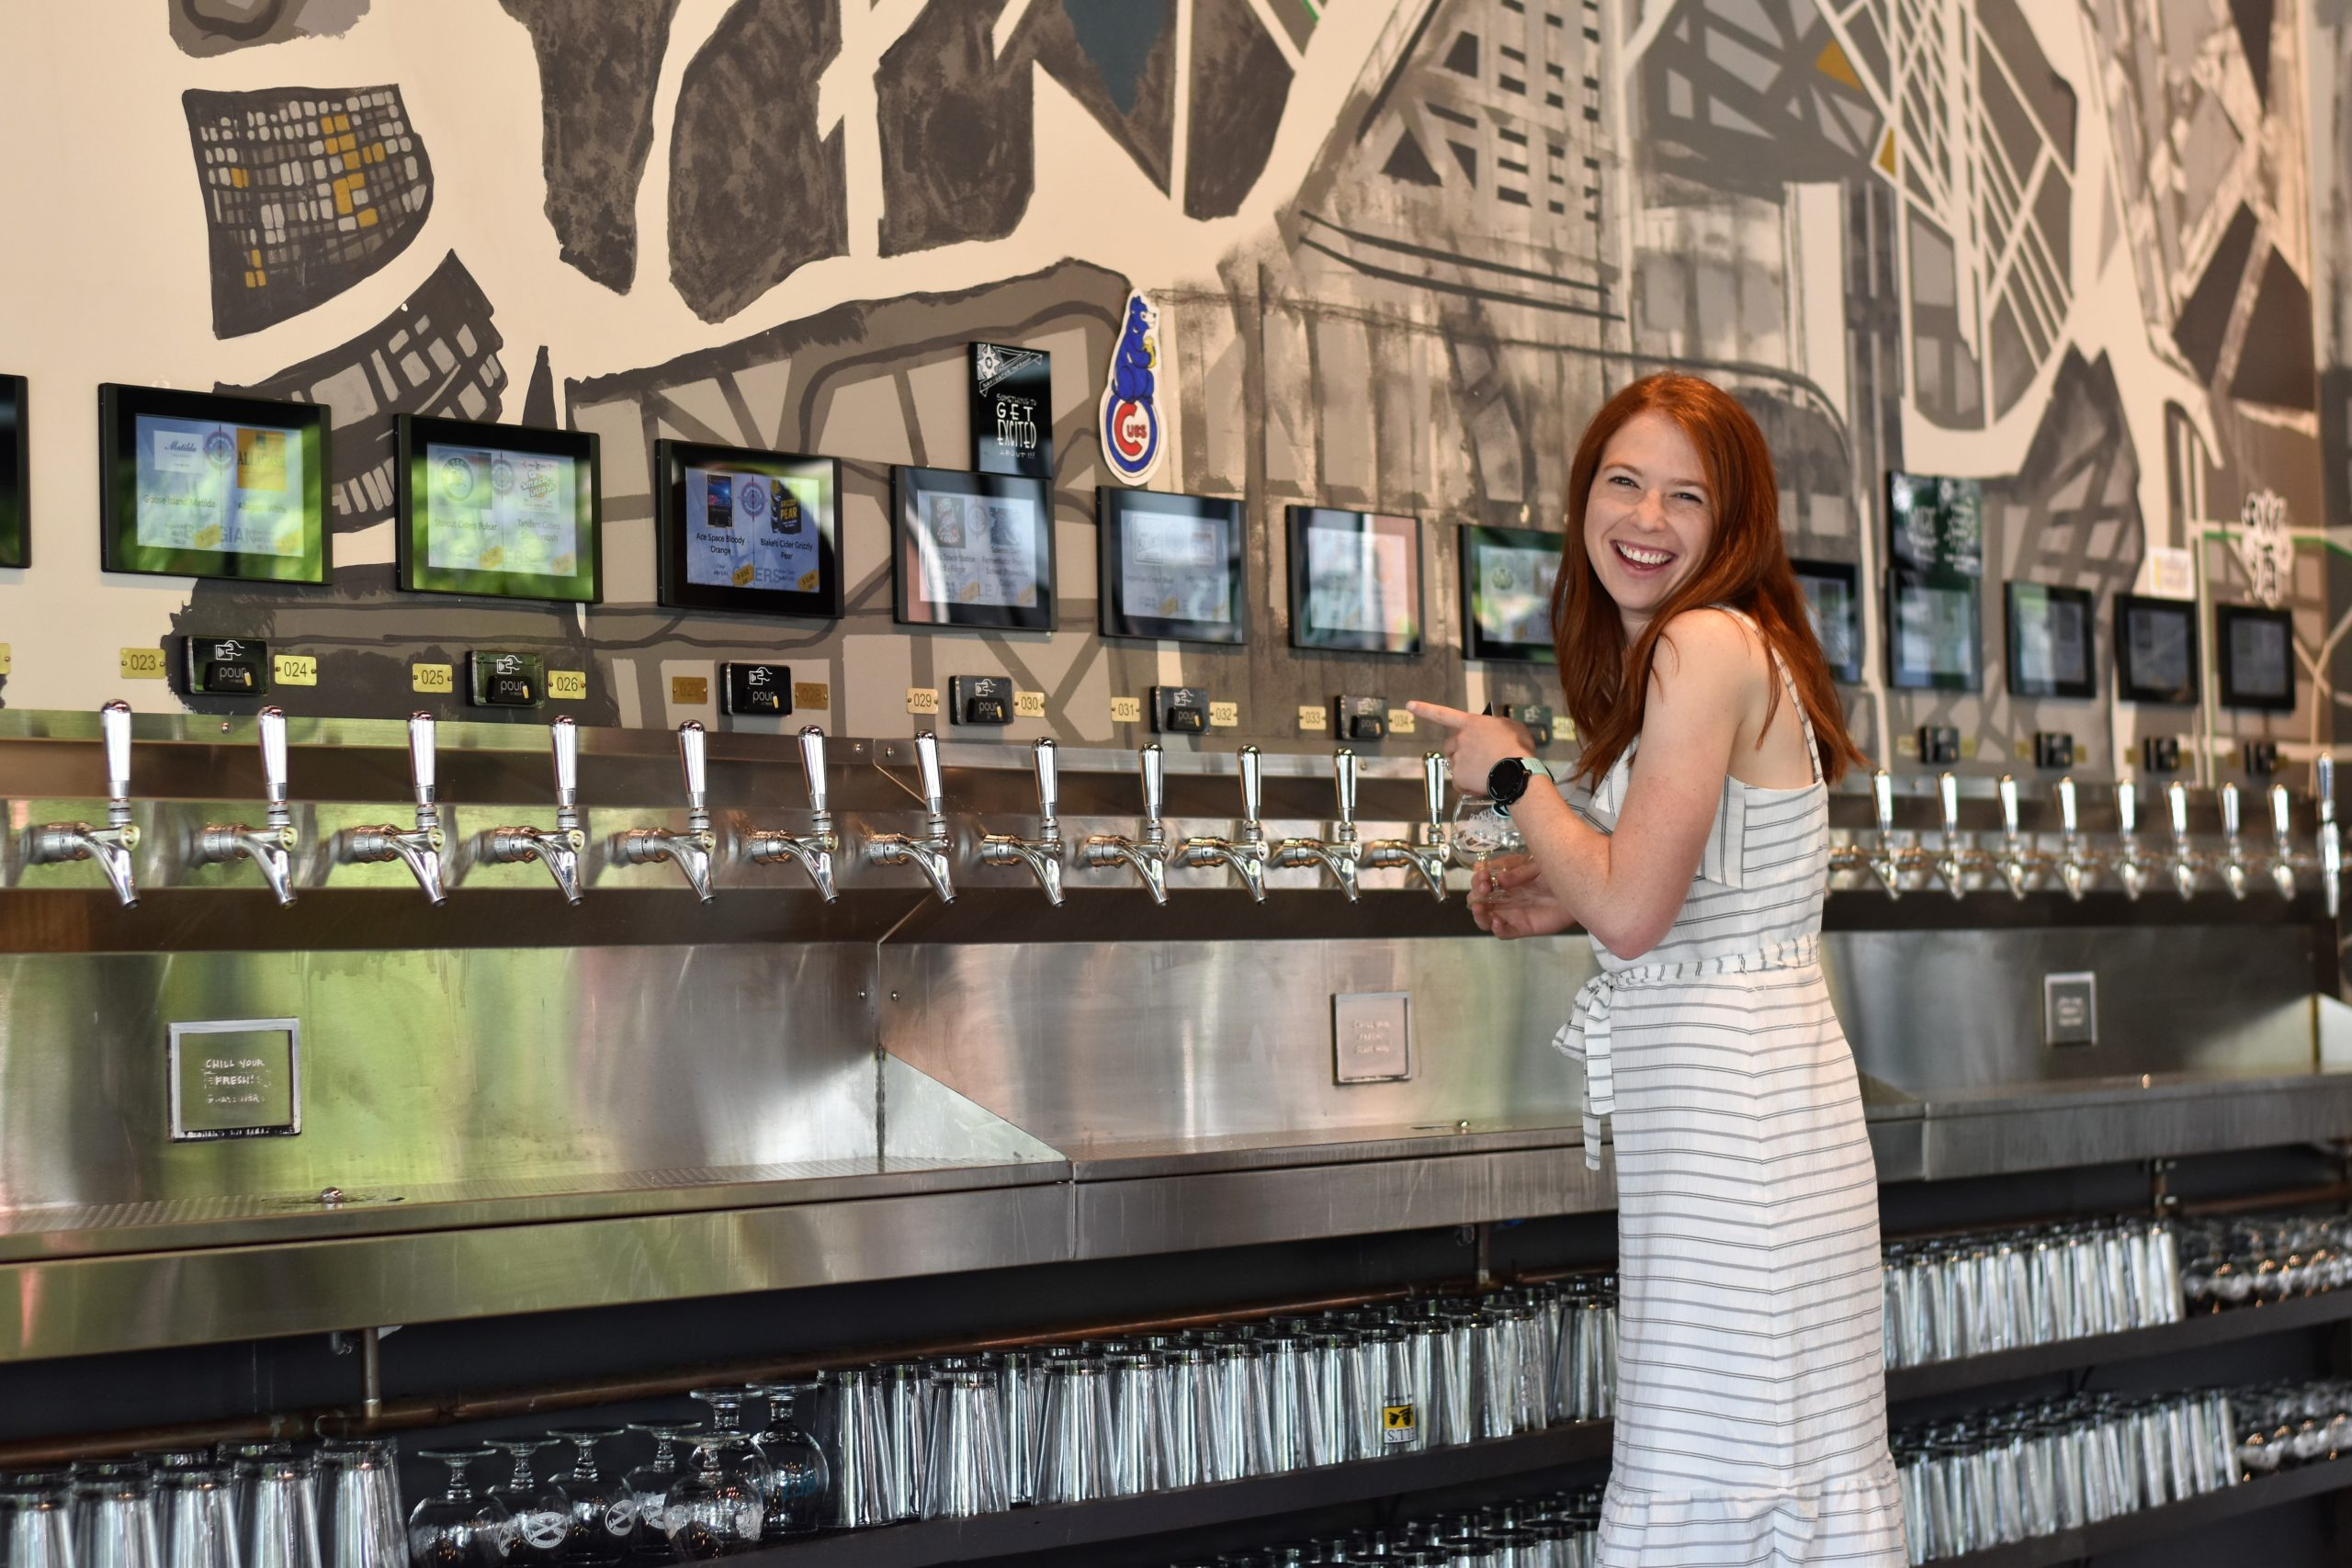 Dave & Buster's To Test Self-Pour Beer Concept In Their New San Diego Location